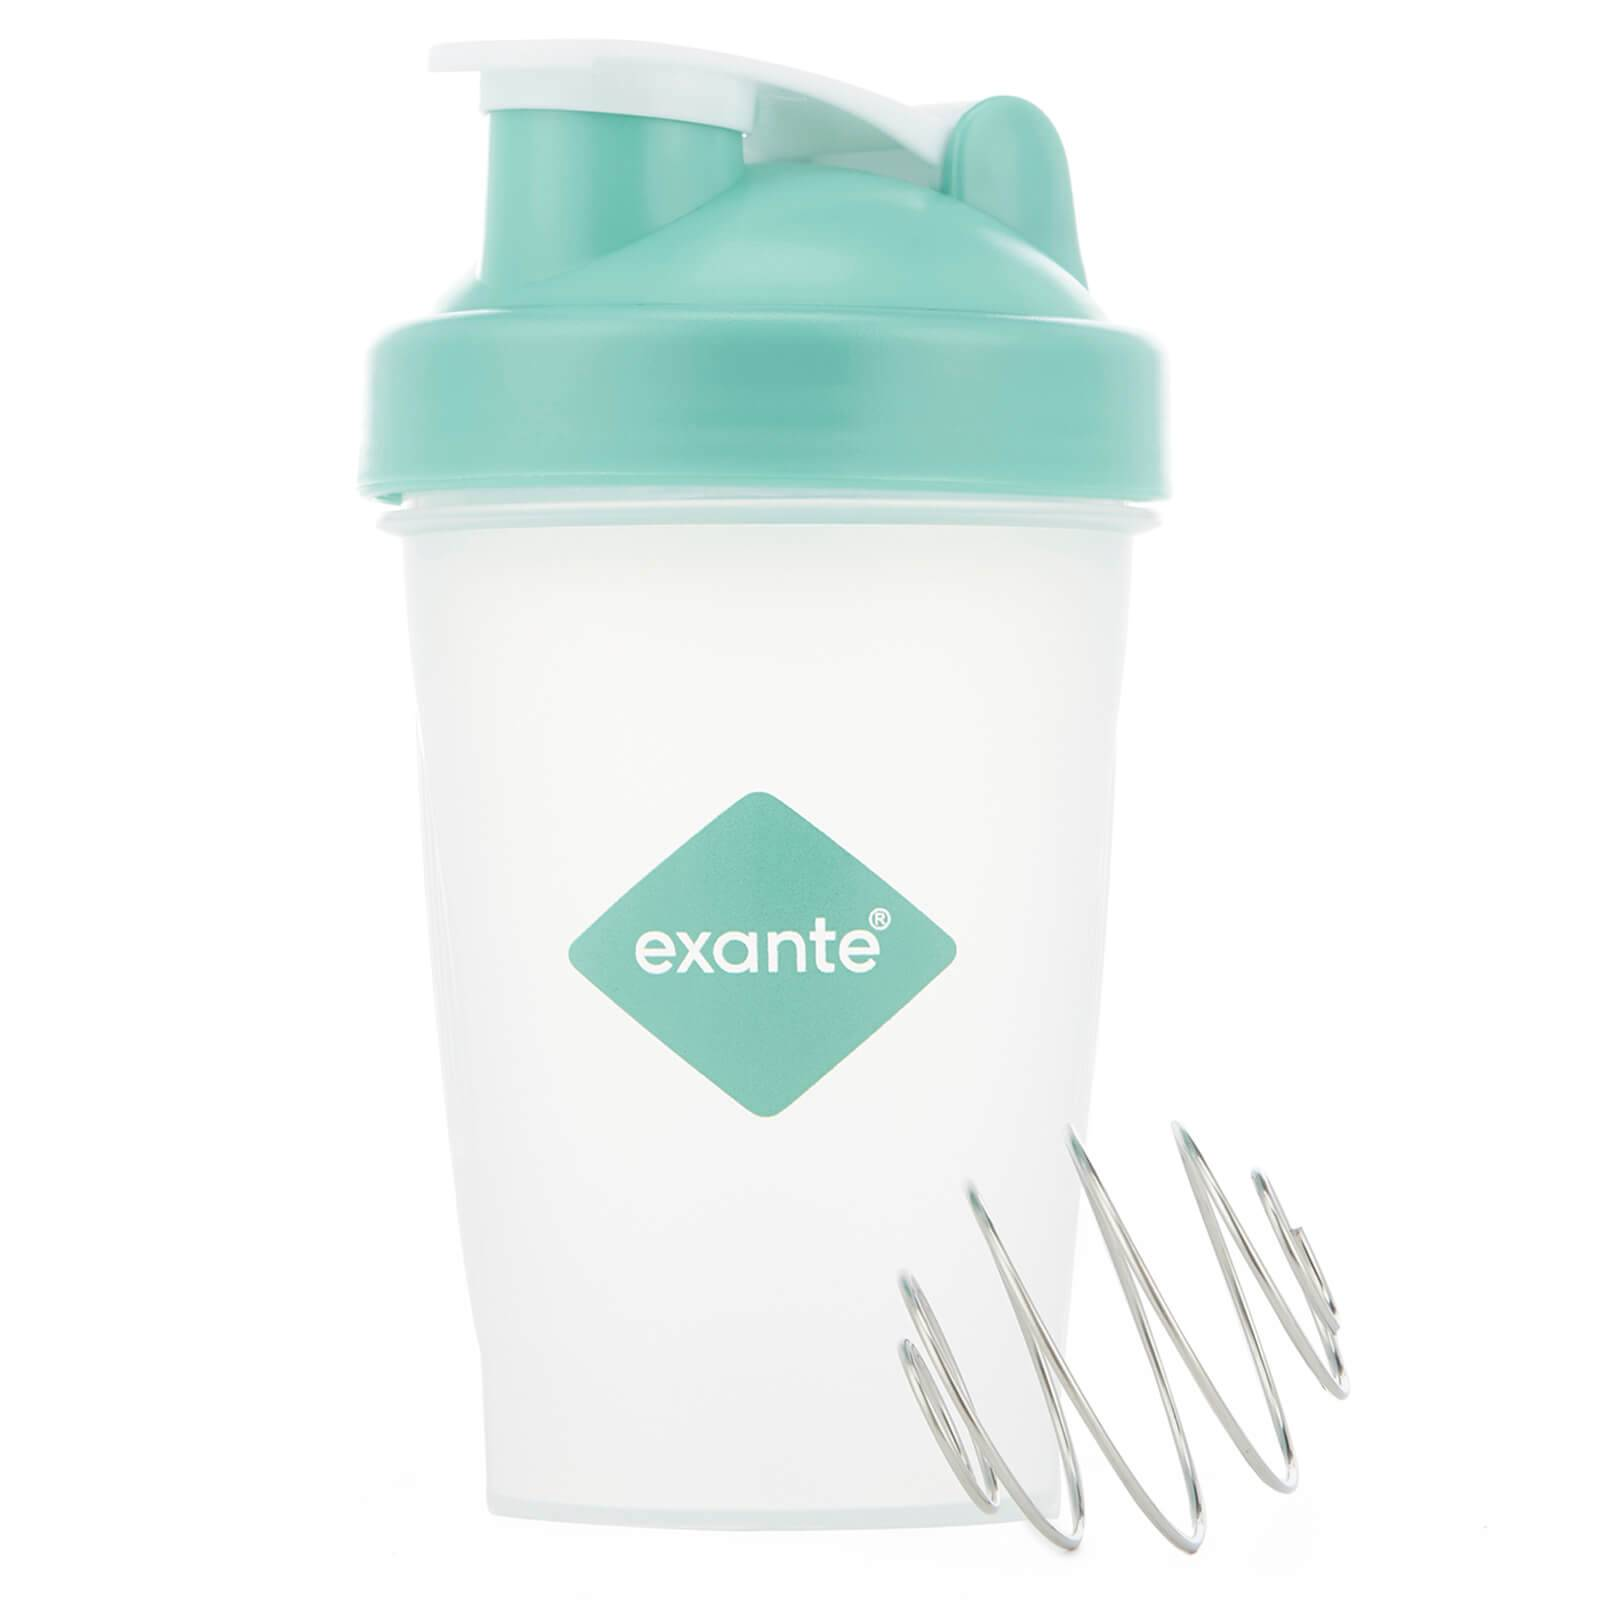 exante diet meal replacement 8 week fruity - 3, only the